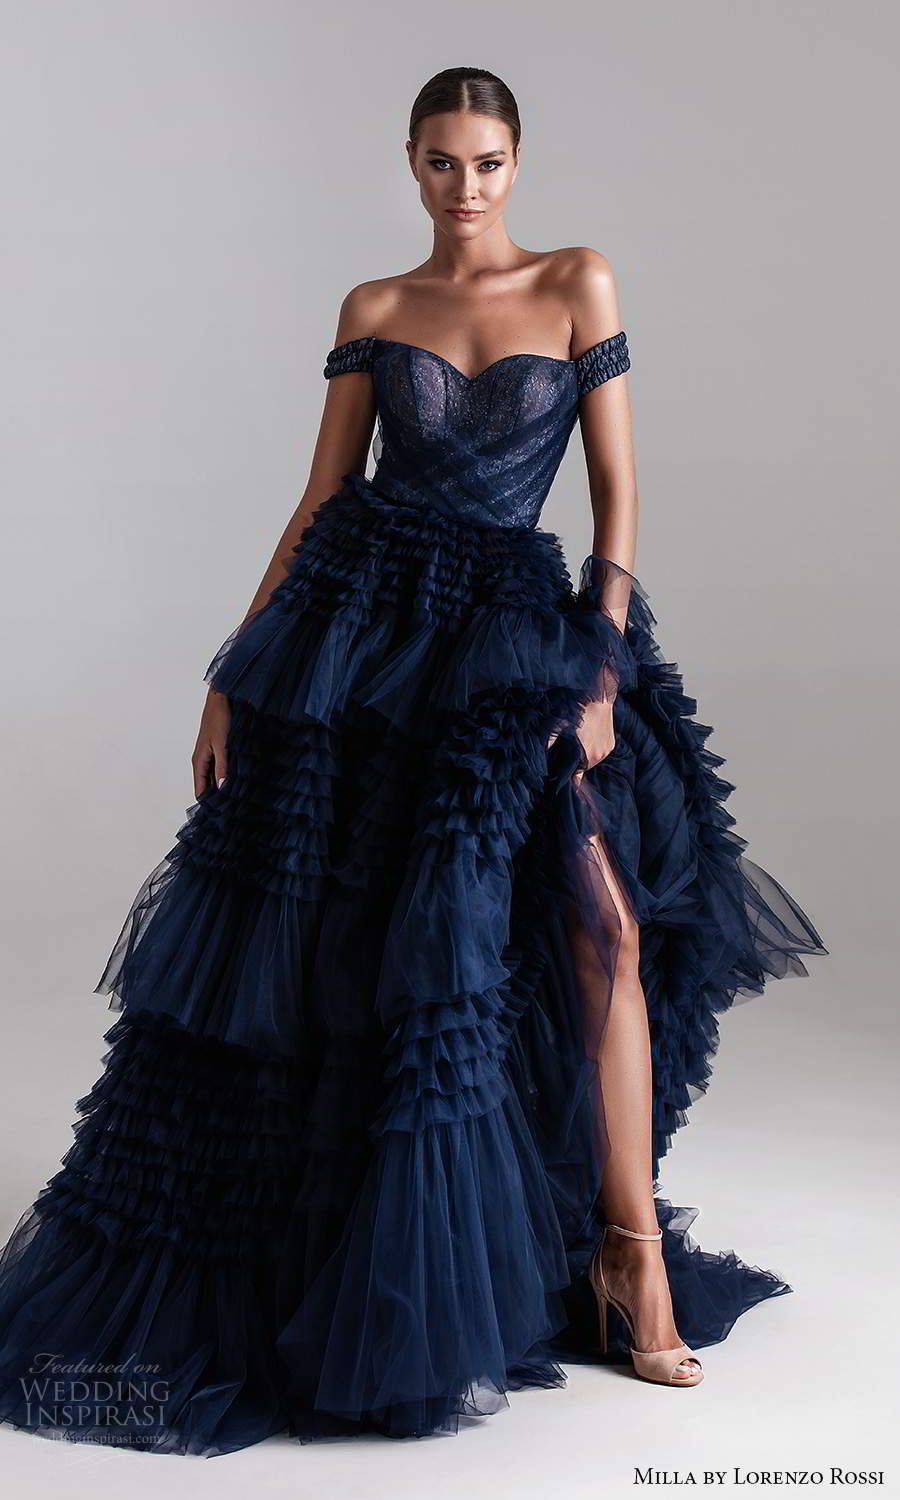 milla by lorenzo rossi 2020 rtw off shoulder straps sweetheart neckline ruched corset bodice a line ball gown wedding dress chapel train (13) mv